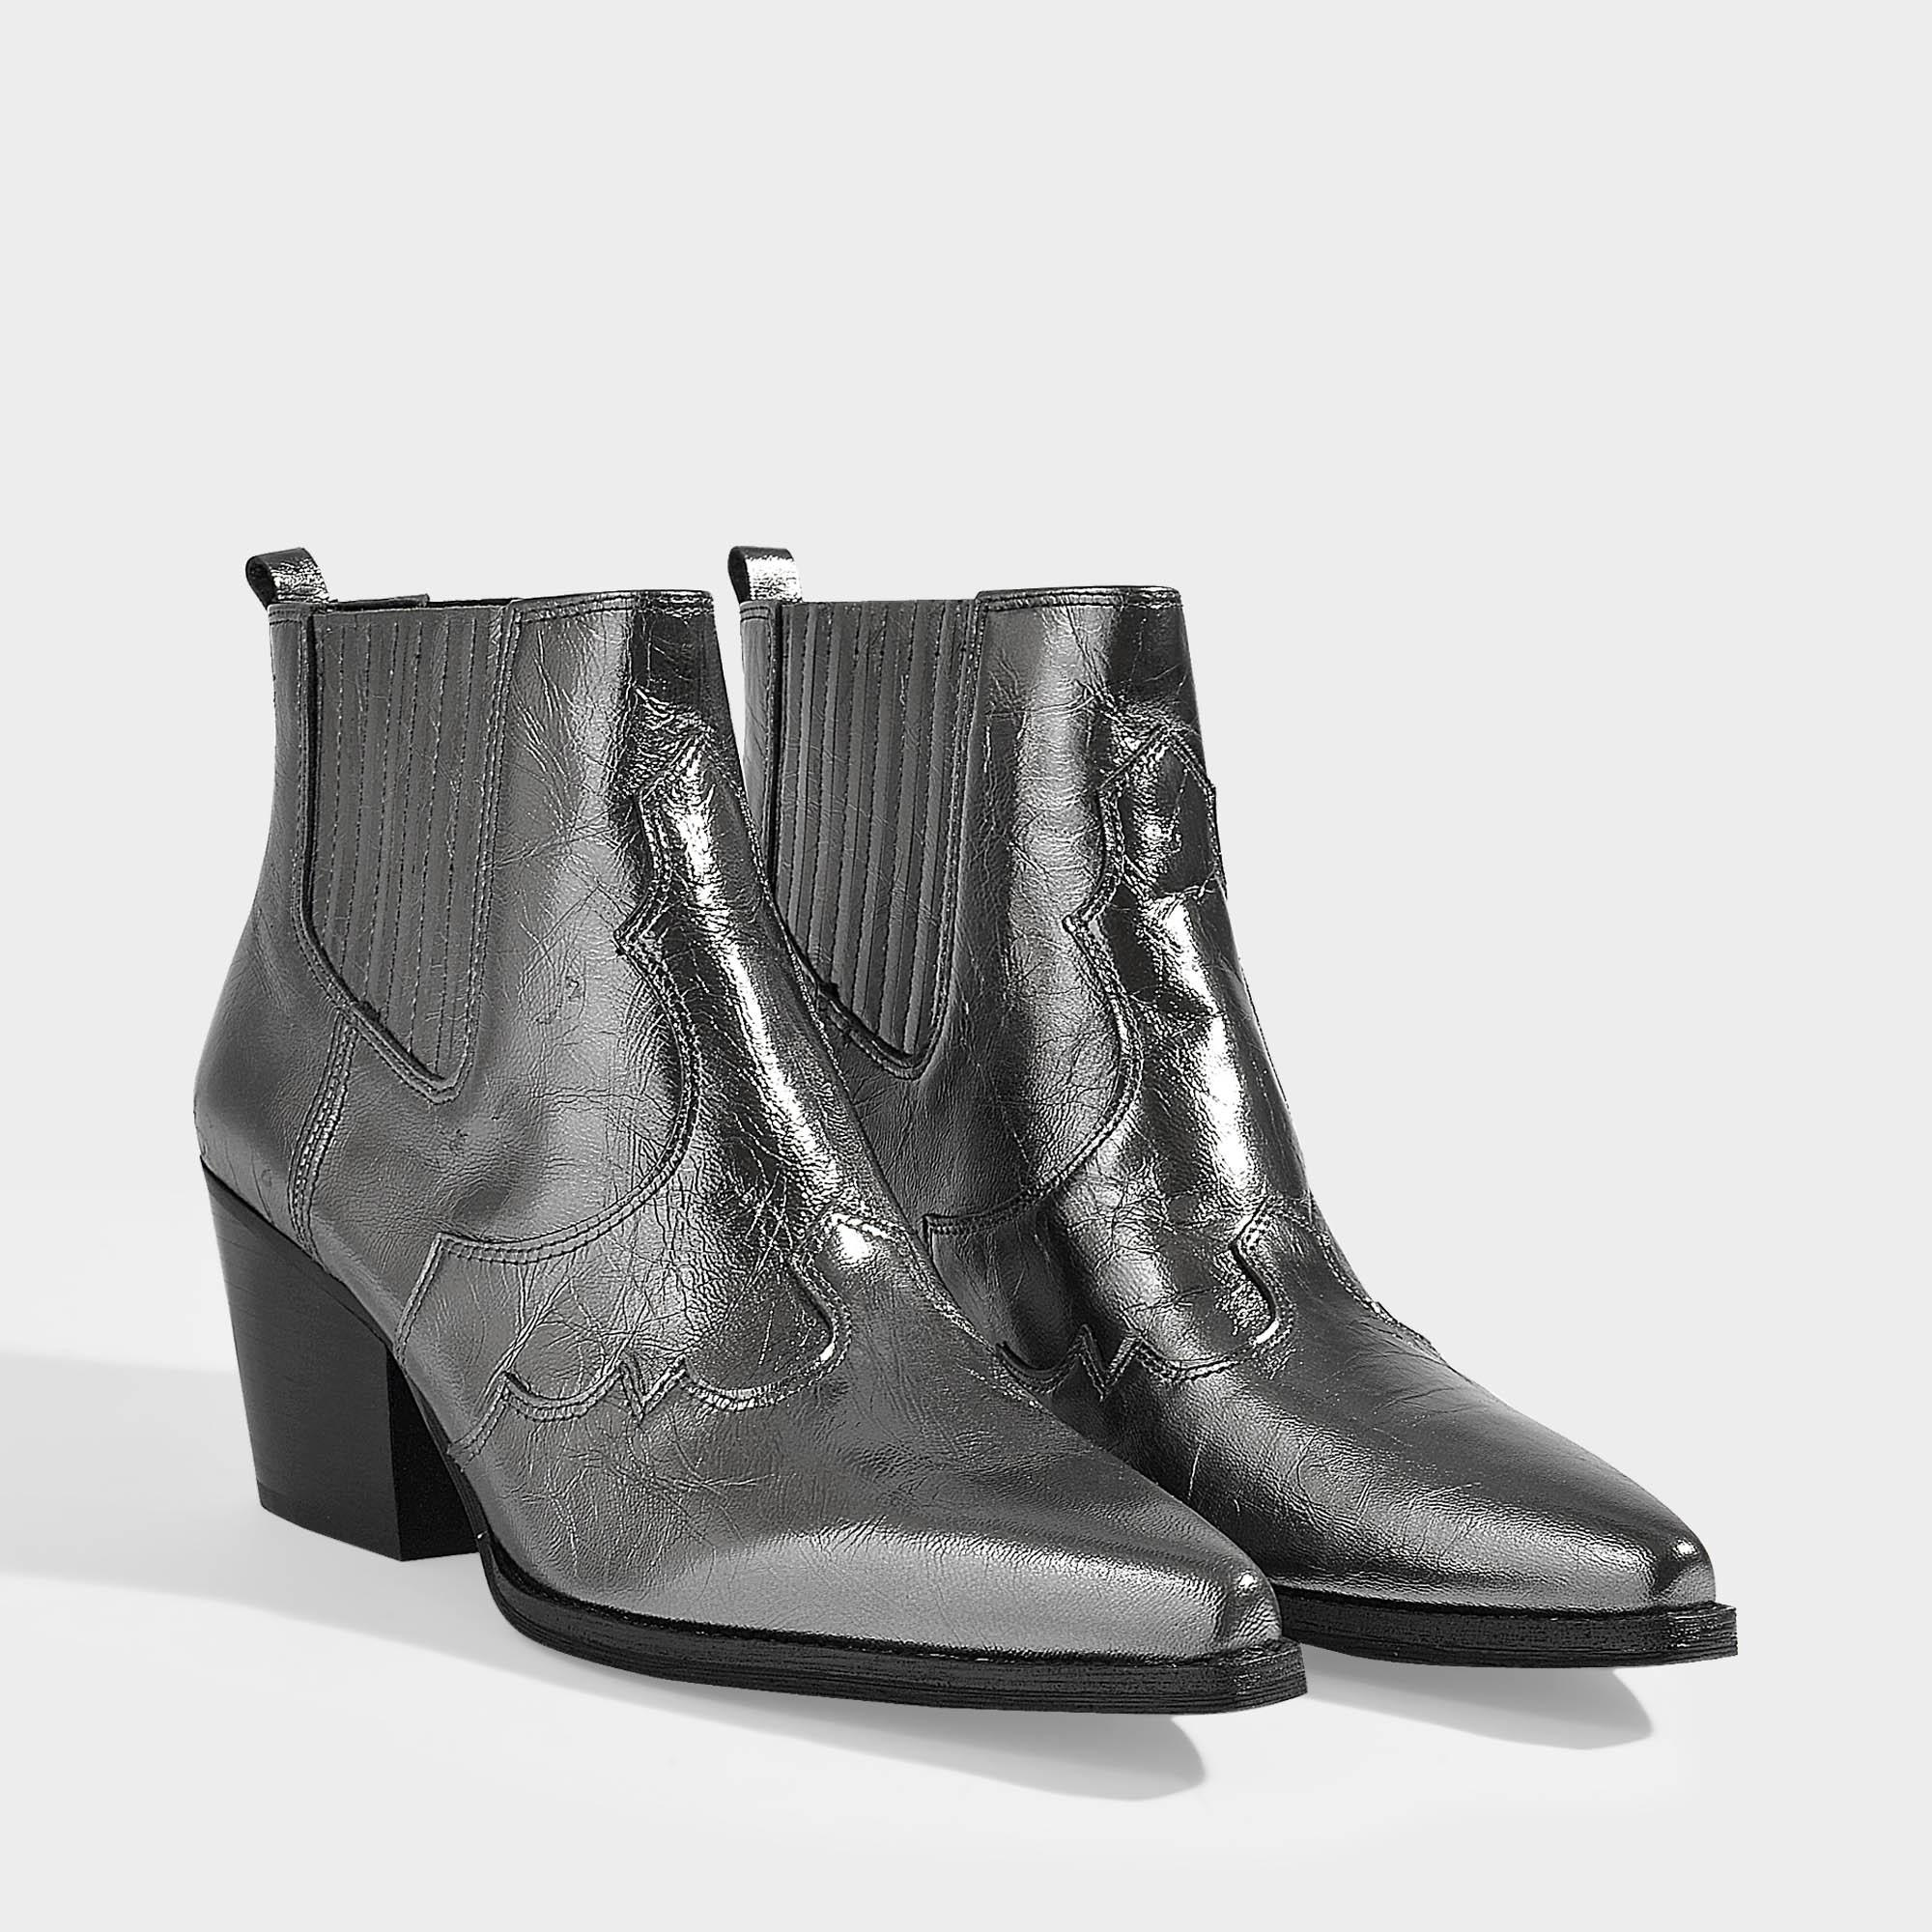 a5387bb989c842 Lyst - Sam Edelman Winona Ankle Boots In Anthracite Calfskin